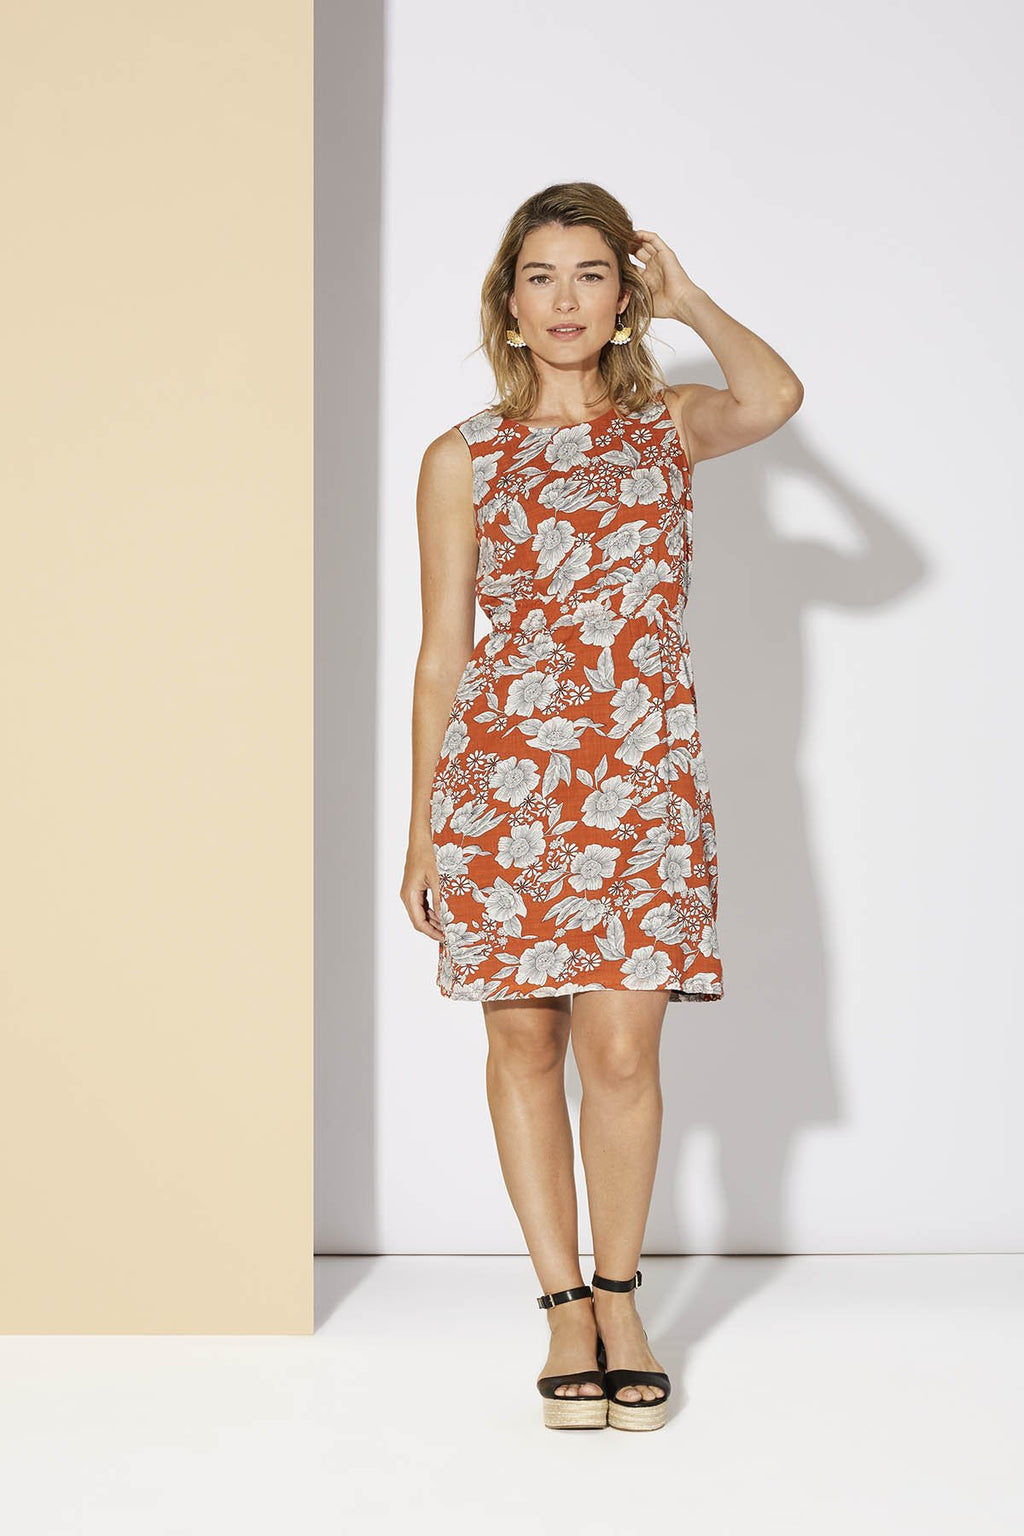 Orange Fleuri. The perfect summer dress for a wedding, work, or brunch. Super comfortable with its elastic and festive waist in its prints. Its opening on the back will give you a breath of fresh air during heat waves. It is fully lined in viscose for unparalleled comfort and protection. 50% cotton, 50% rayon, wash on delicate cycle, air dry. Designed and Made in Quebec.